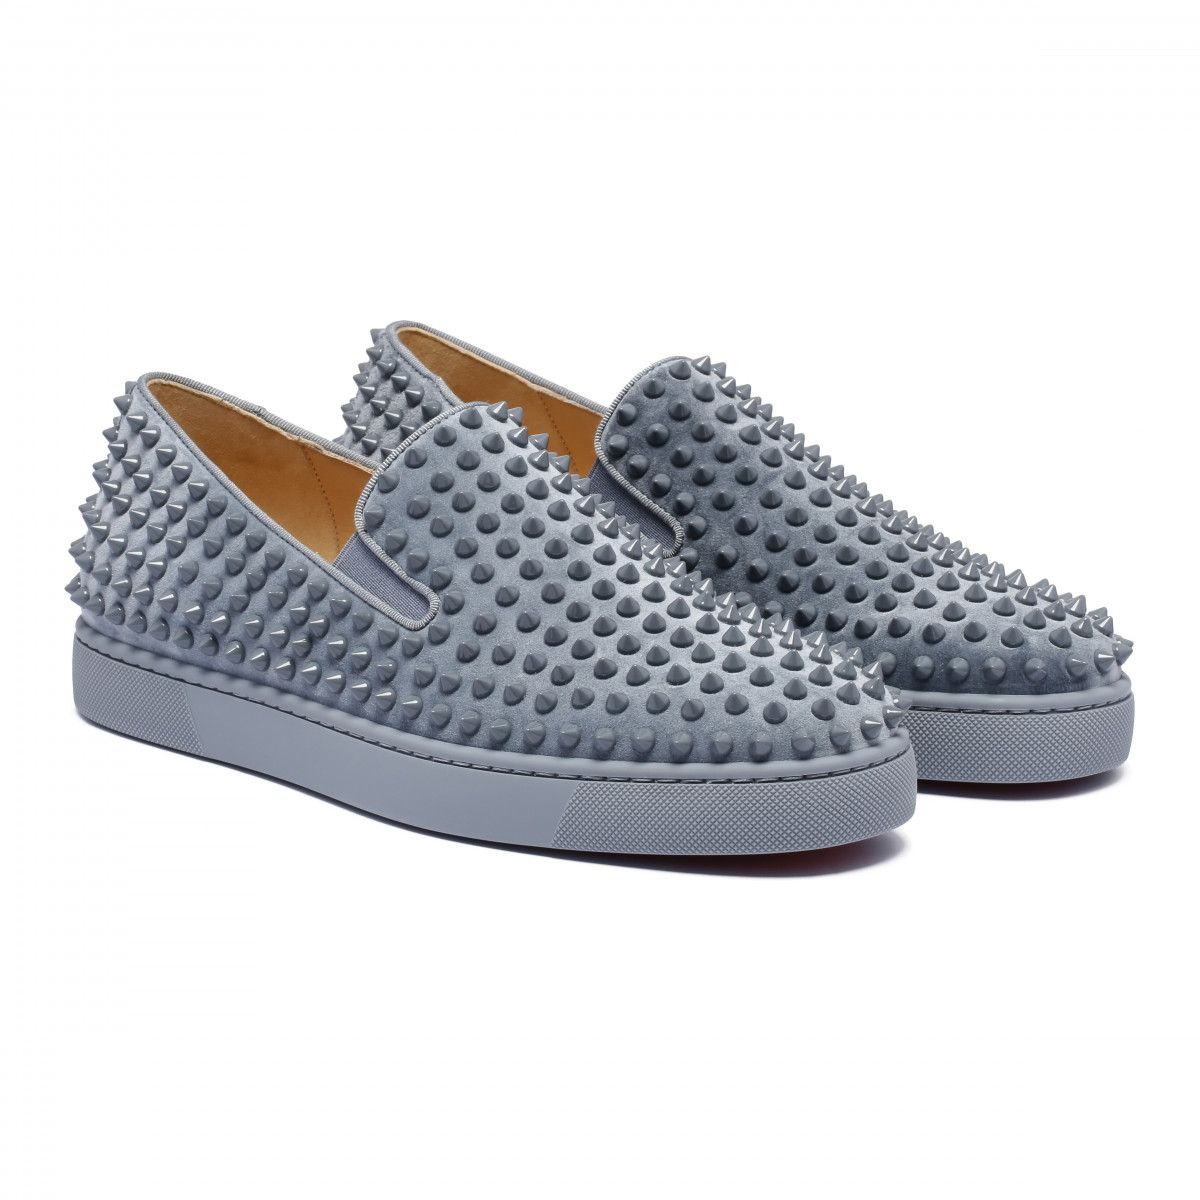 """cfa89269c2a Christian Louboutin """"Roller-Boat Veau Velours Sneakers"""" in square-blue  leather"""